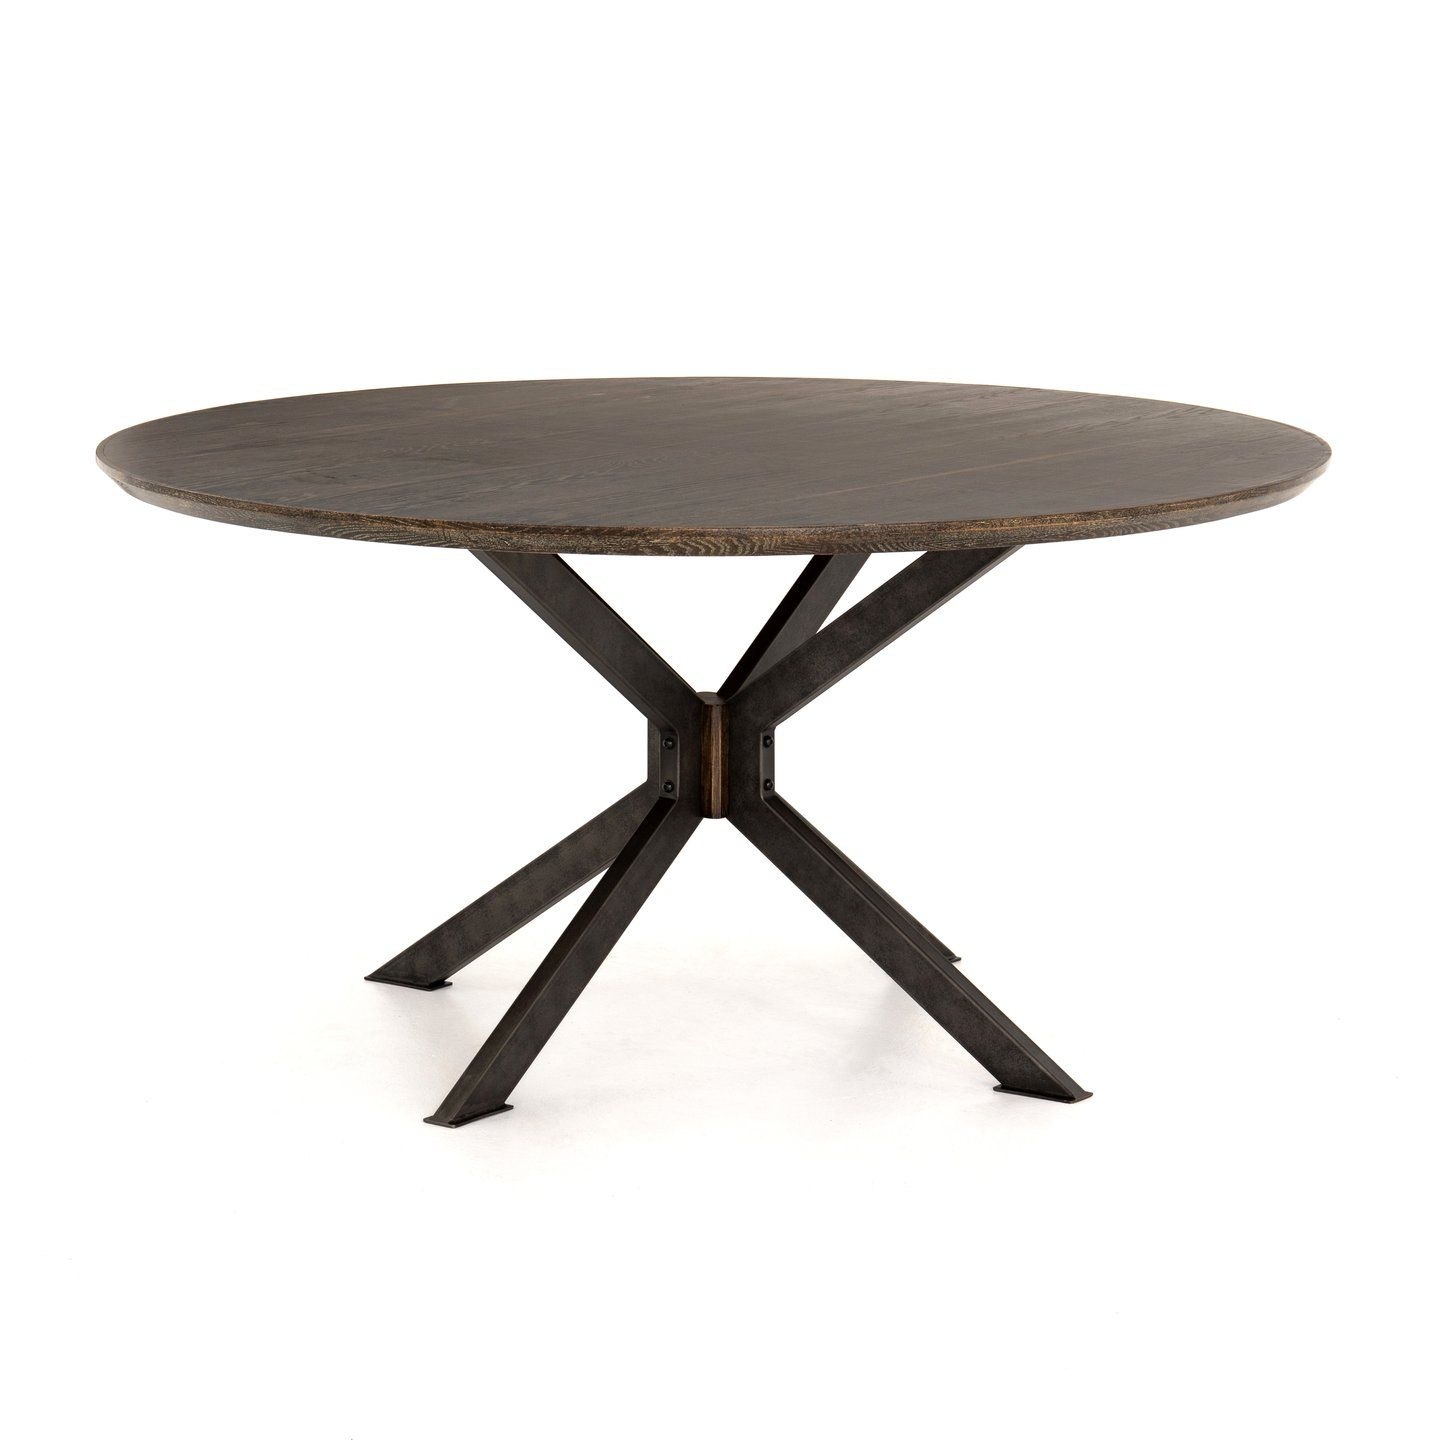 Spider Round Dining Table English Brown Oak Round Dining Table